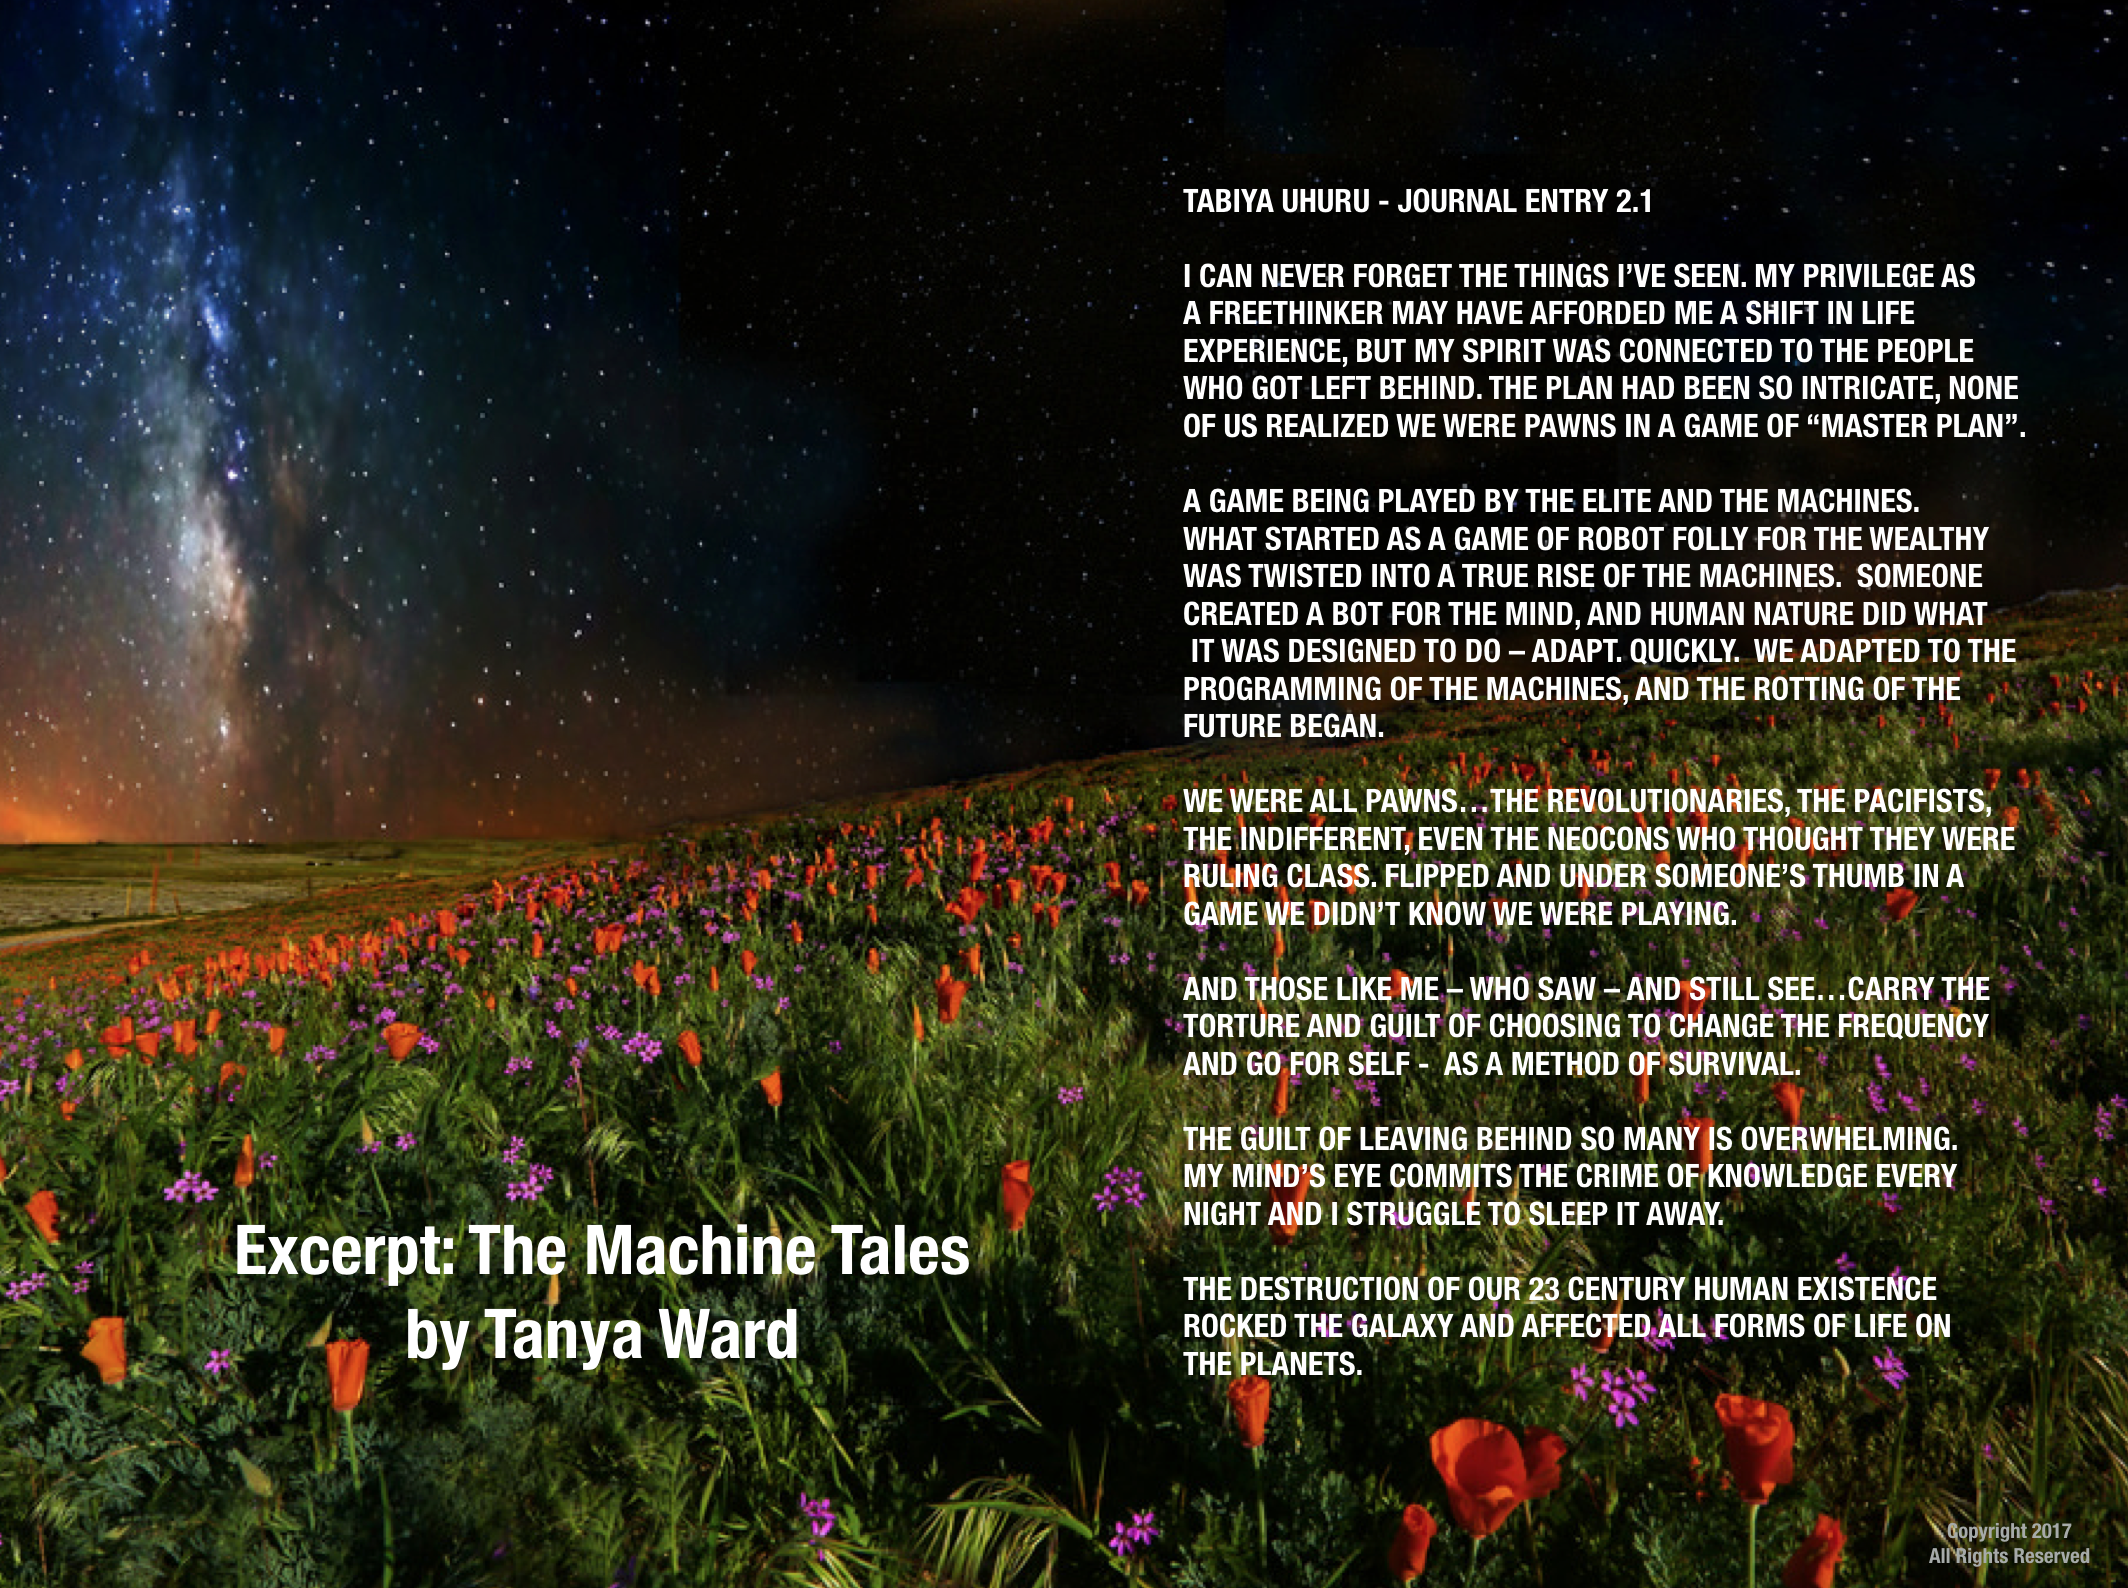 The Machine Tales